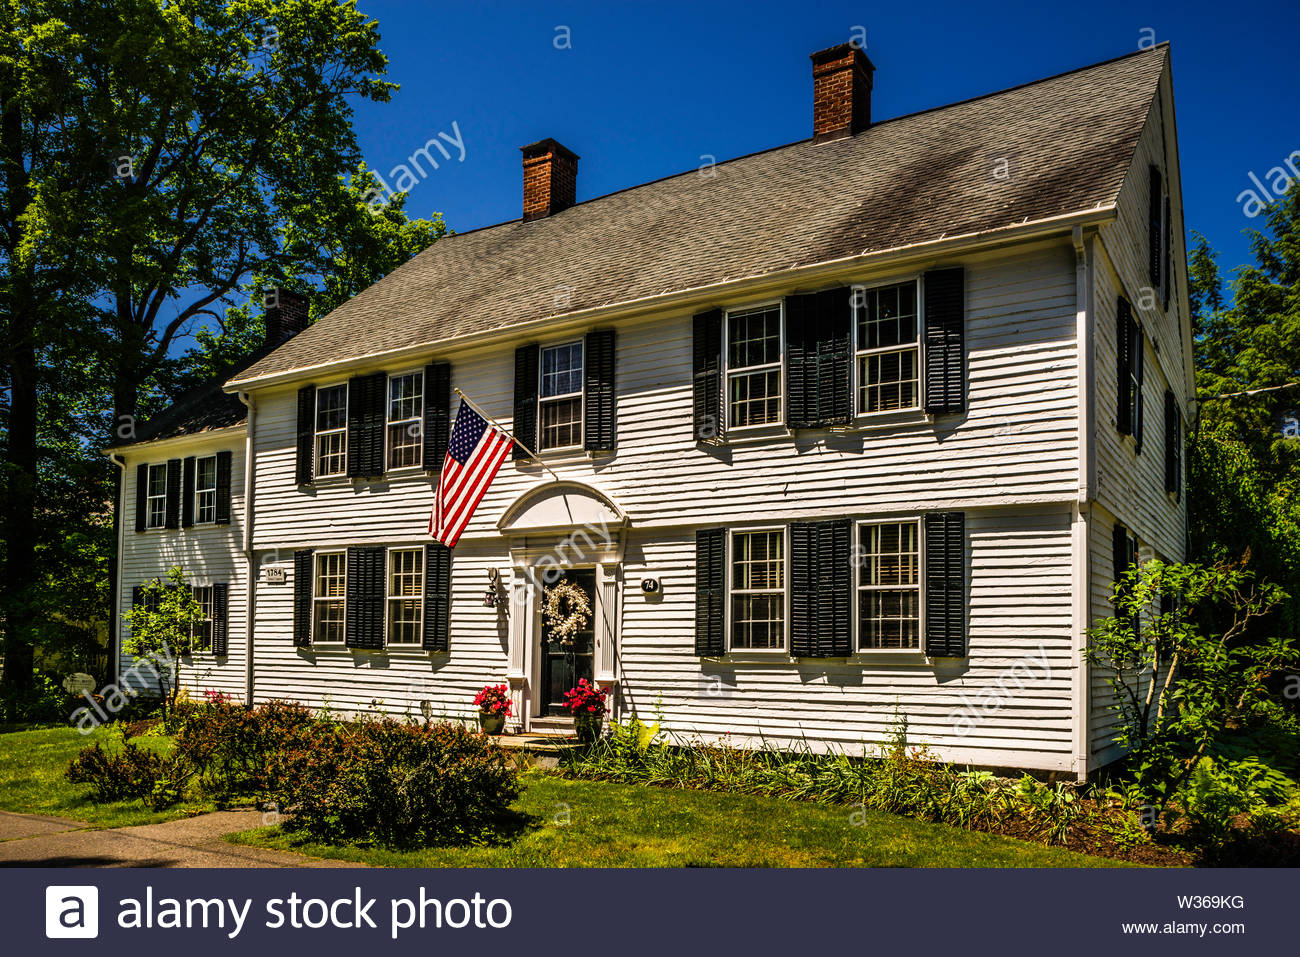 House on South Street Litchfield Historic District _ Litchfield, Connecticut, USA - Stock Image